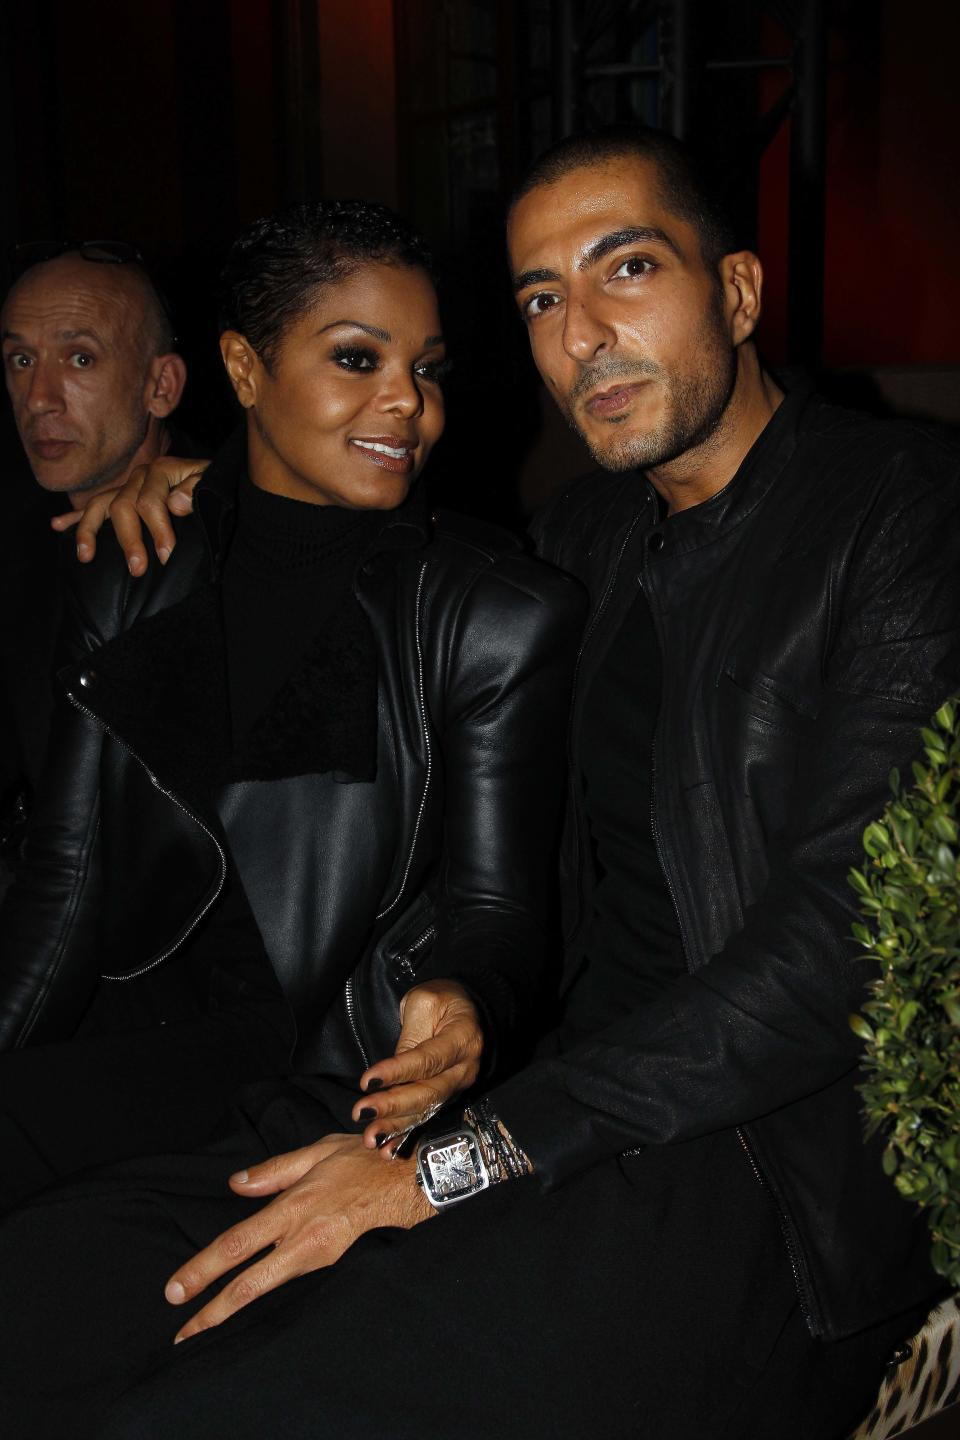 Janet Jackson and Wissam Al Mana attend the Roberto Cavalli 40th anniversary party in Paris on Sept. 29, 2010. (Photo: Michel Dufour/WireImage)